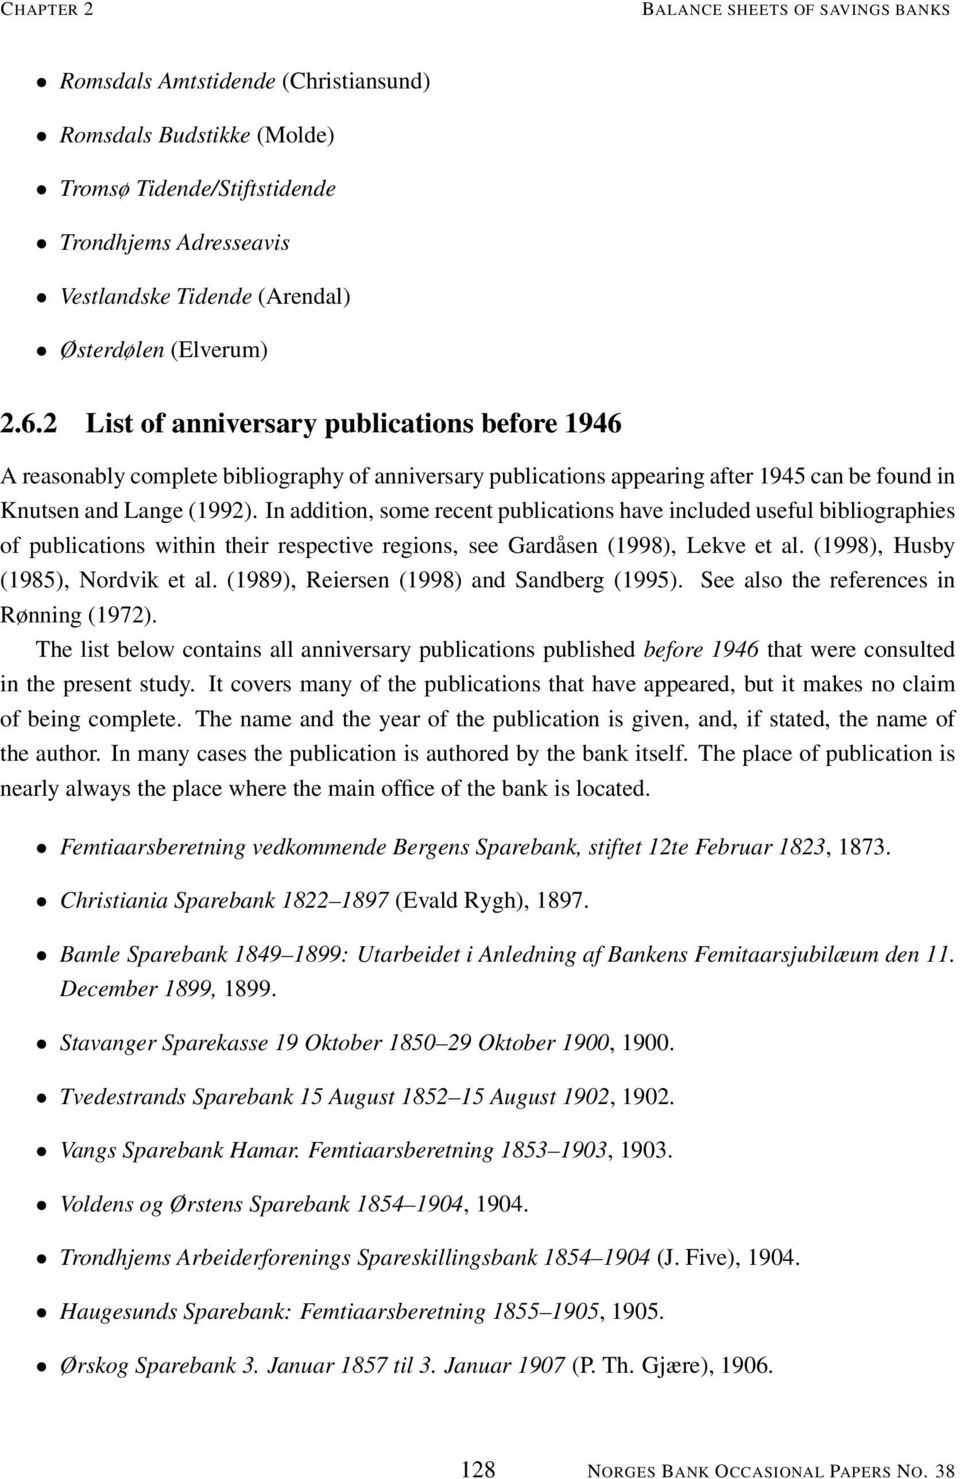 In addition, some recent publications have included useful bibliographies of publications within their respective regions, see Gardåsen (1998), Lekve et al. (1998), Husby (1985), Nordvik et al.